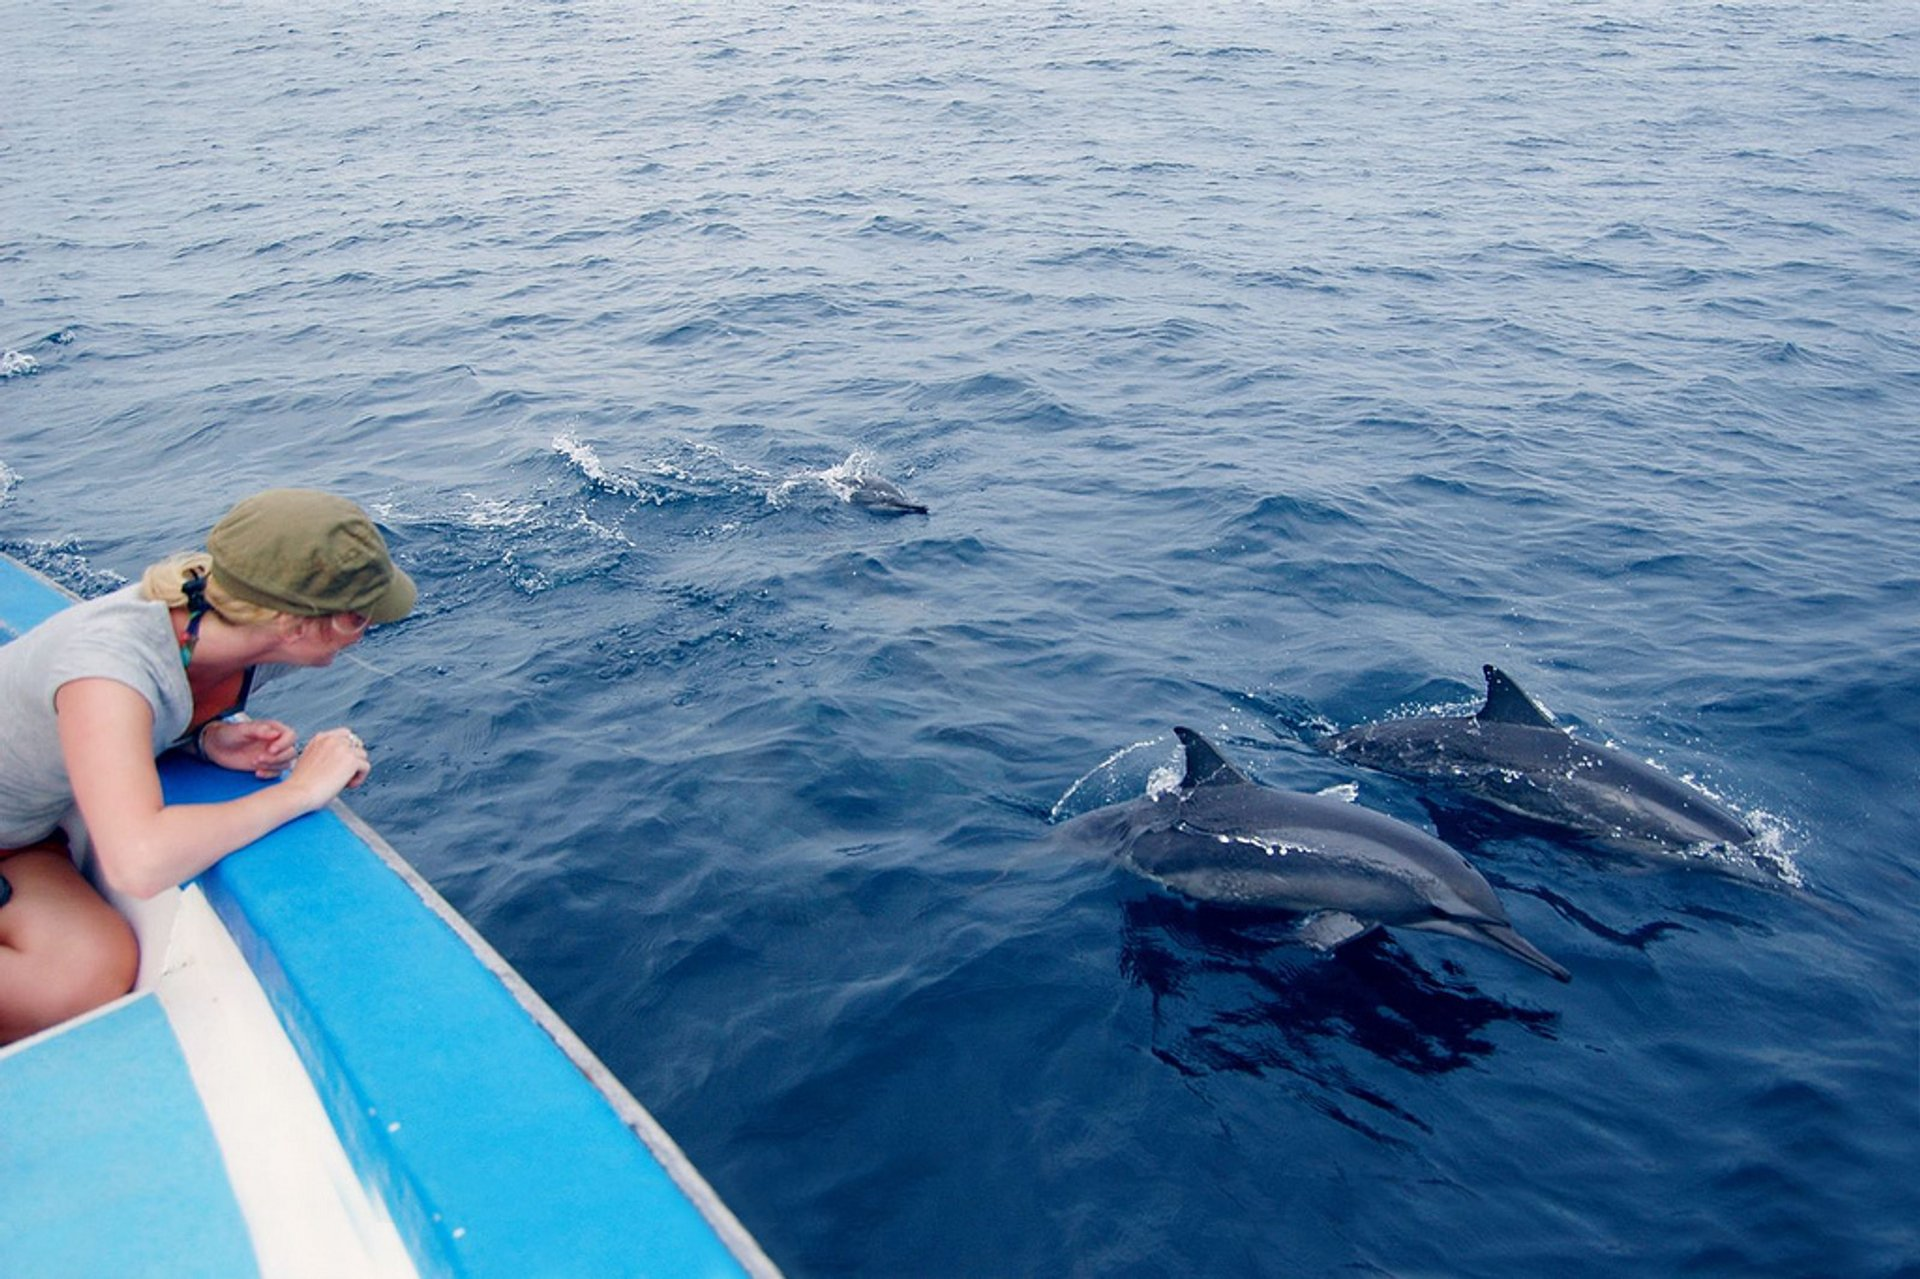 Dolphin Watching in Maldives 2019 - Best Time